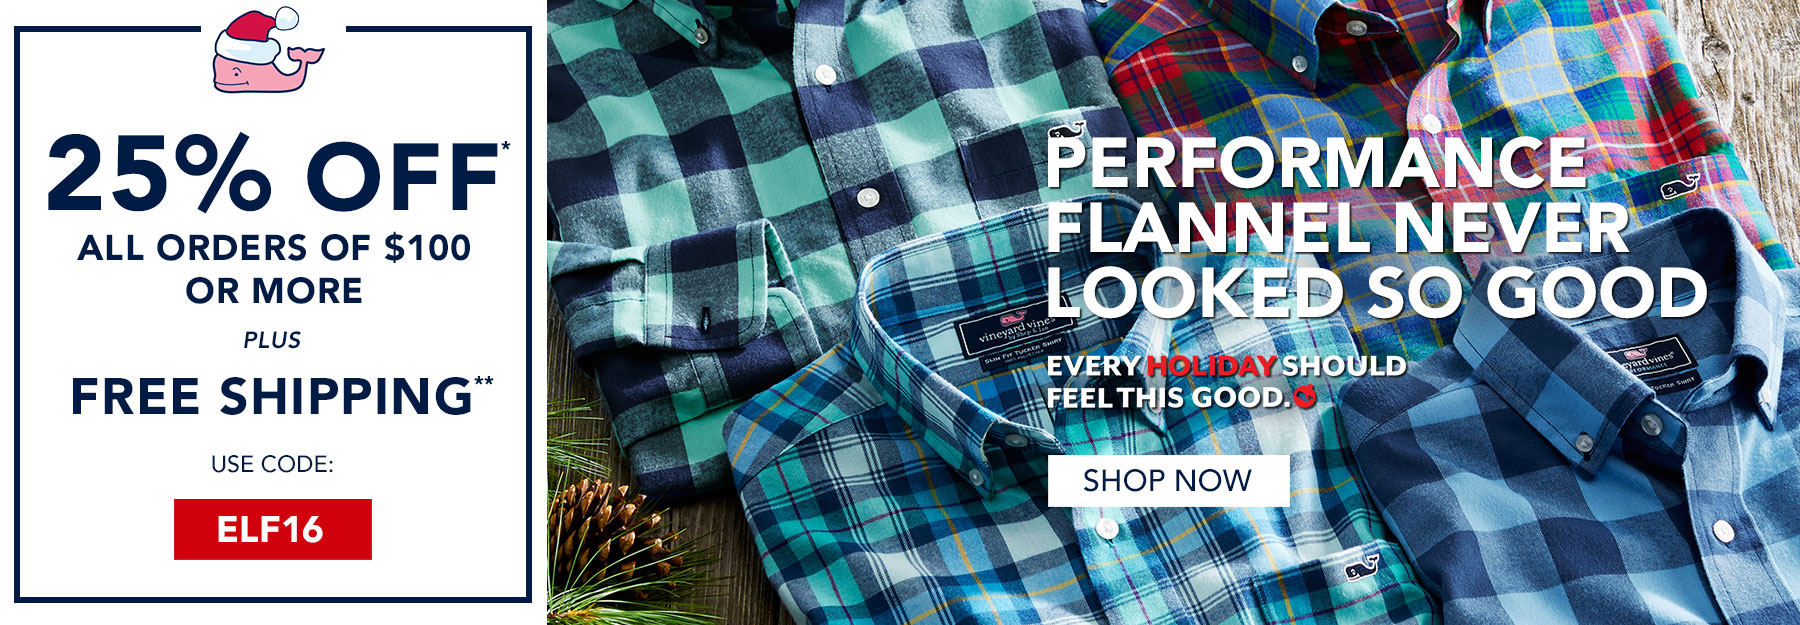 25% off $100 or more plus free shipping. Use code ELF16. Shop now.